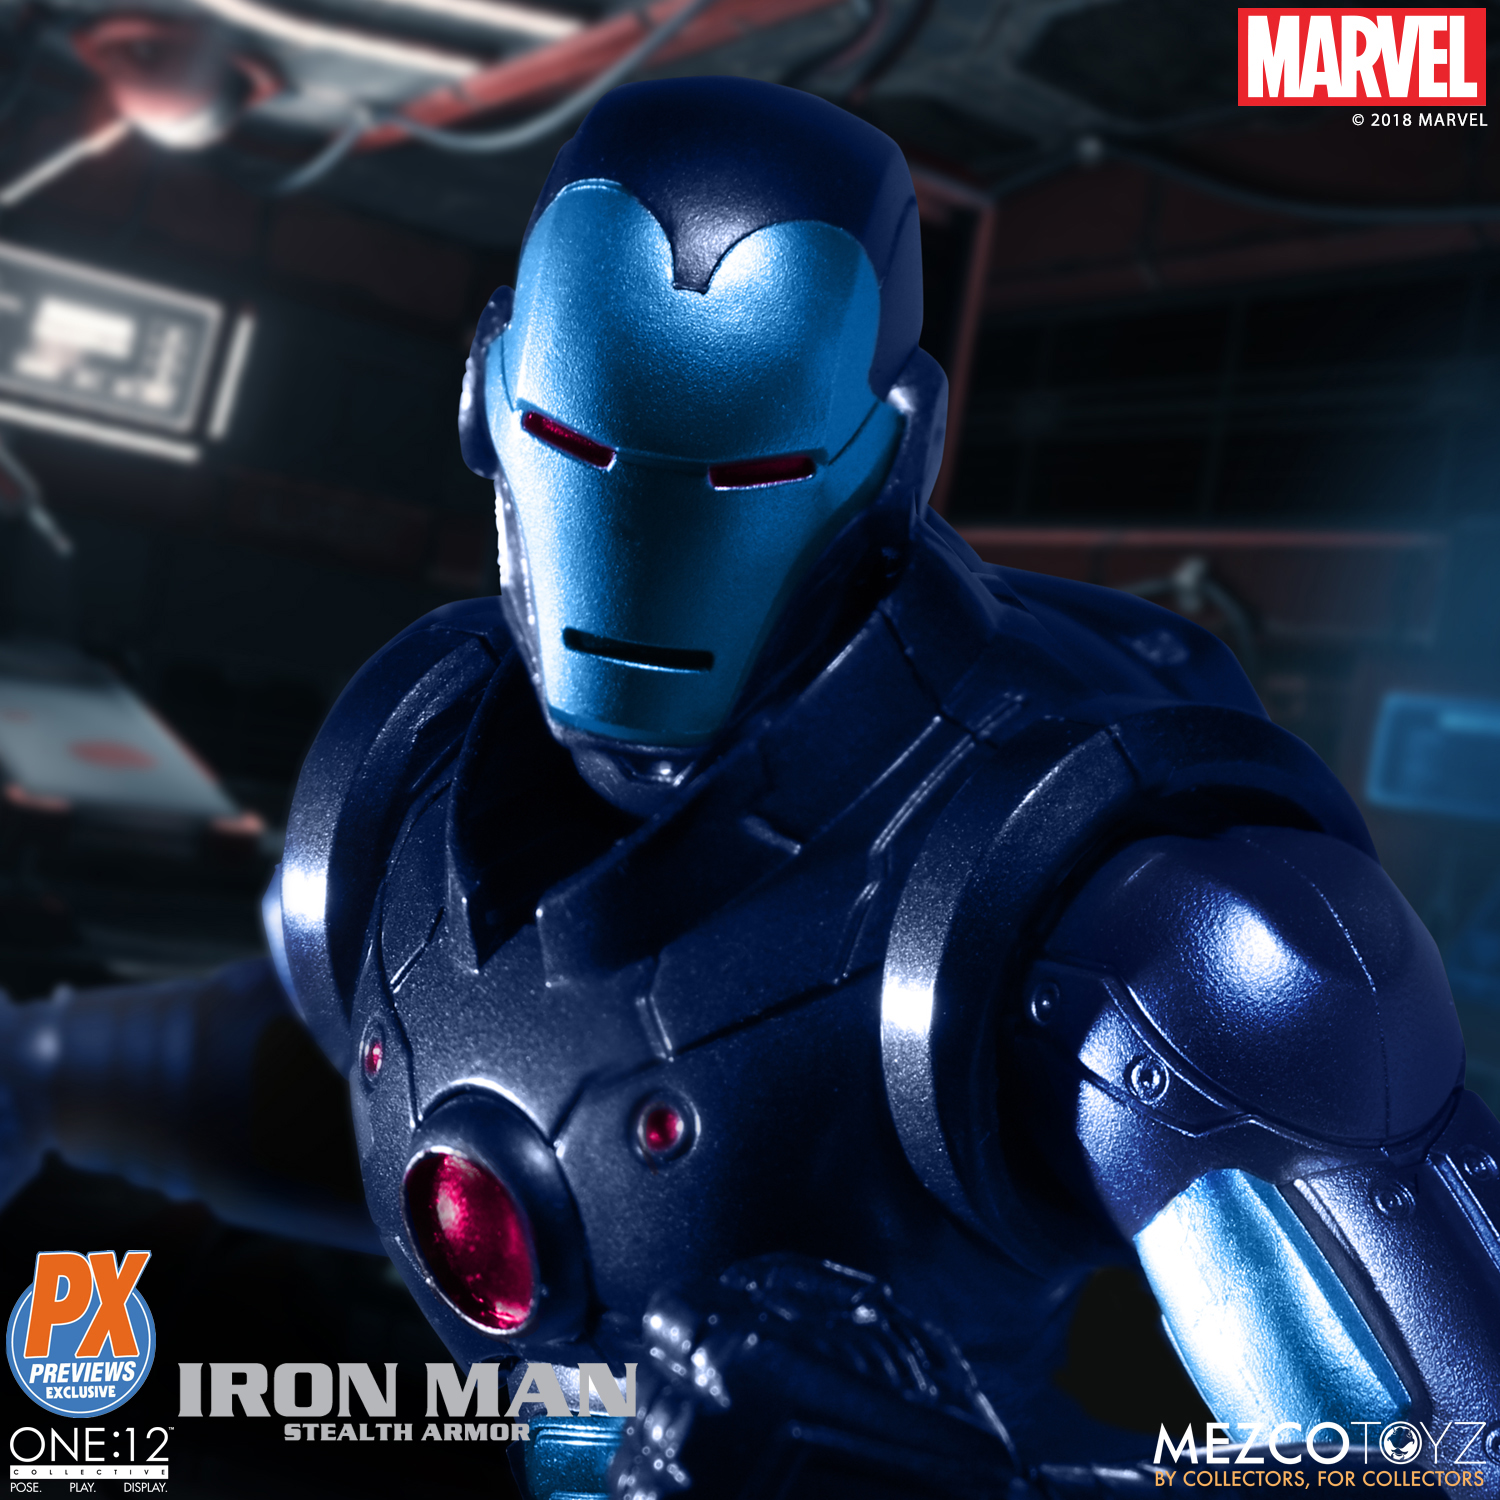 Mezco-One12-Previews-PX-Exclusive-Iron-Man-1